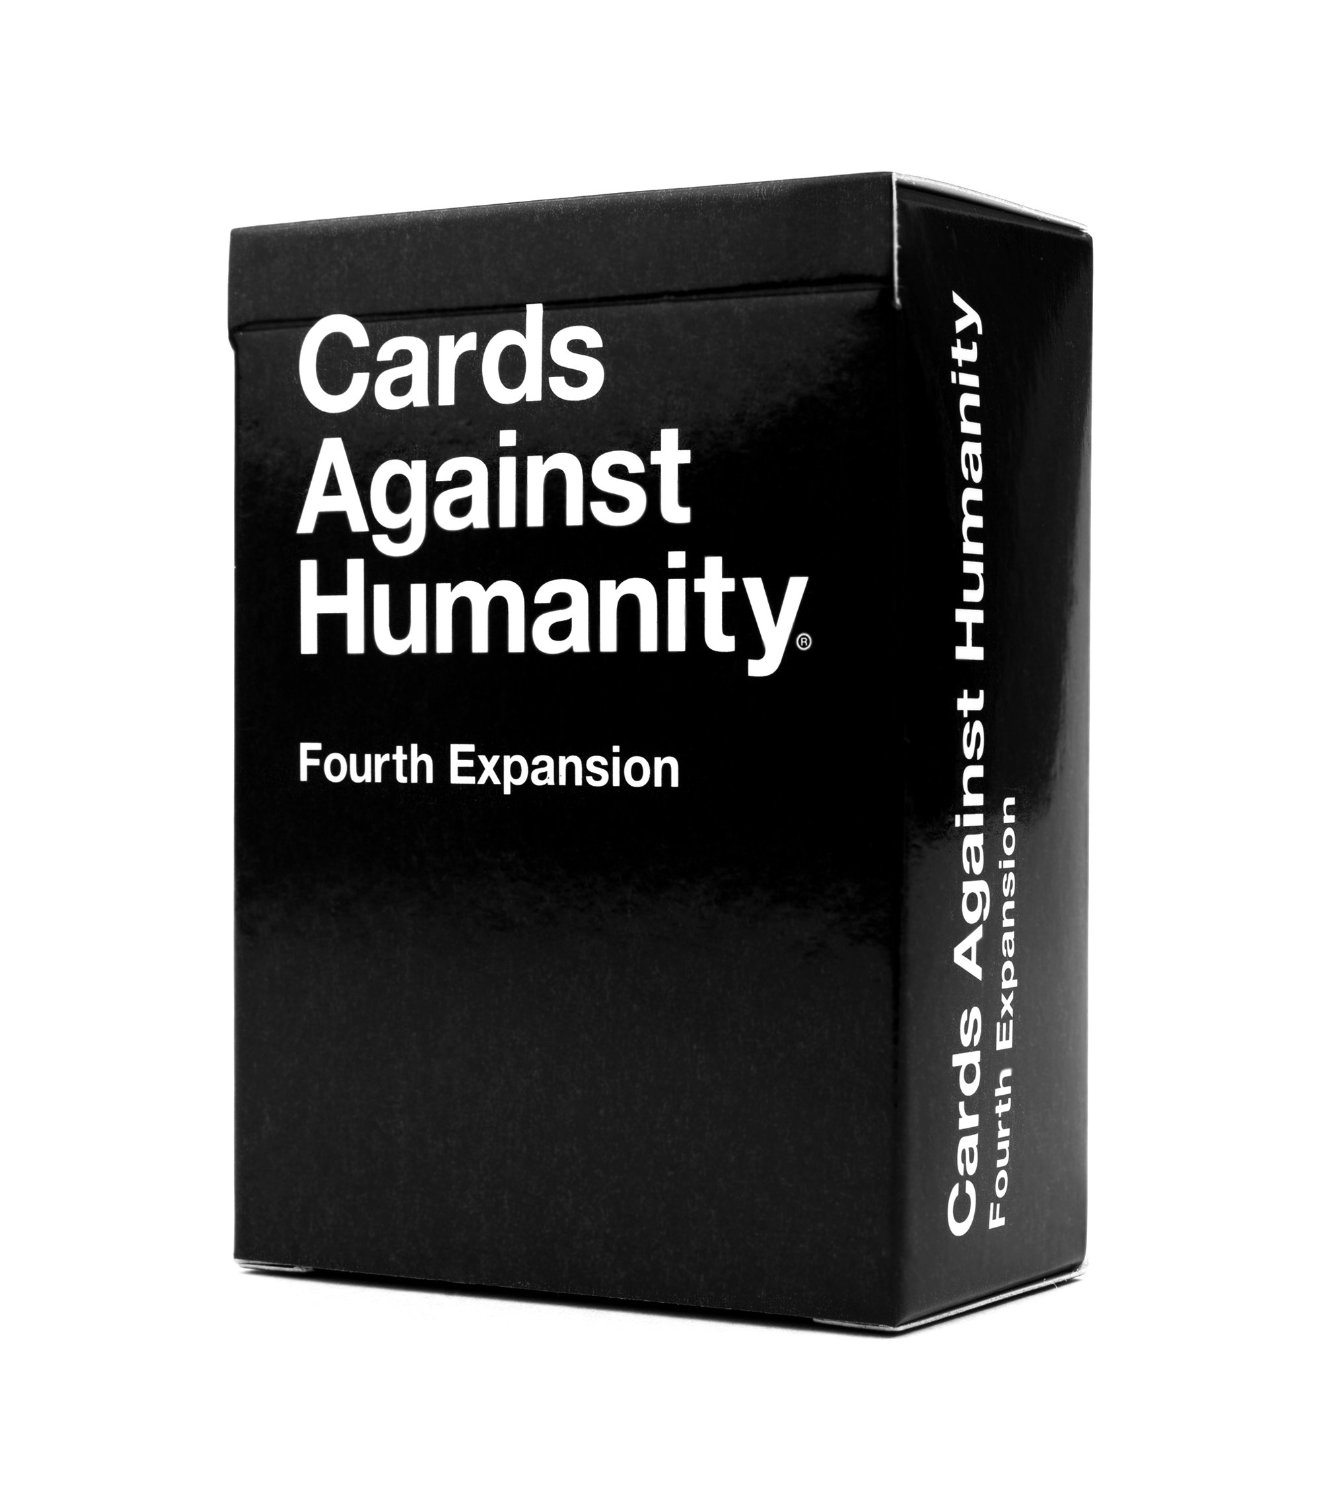 71If7LygCuL. SL1500  - Cards Against Humanity: Fourth Expansion